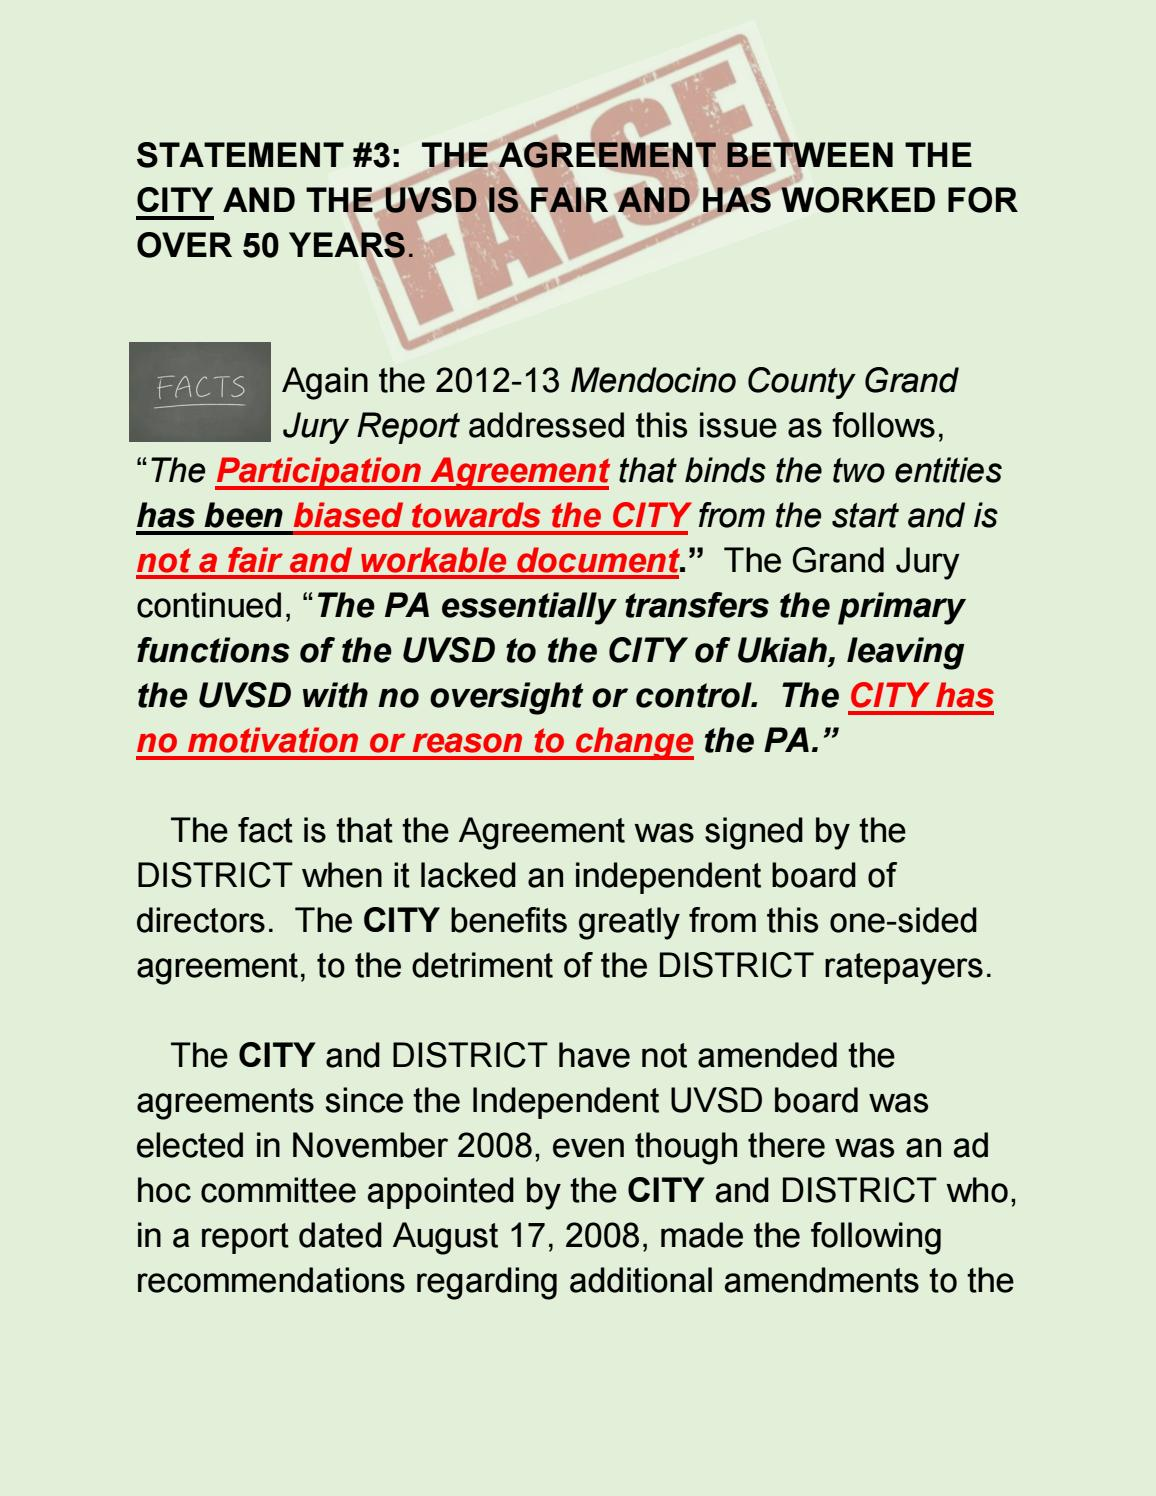 The Agreement Between The City And The Uvsd Is Fair And Has Worked